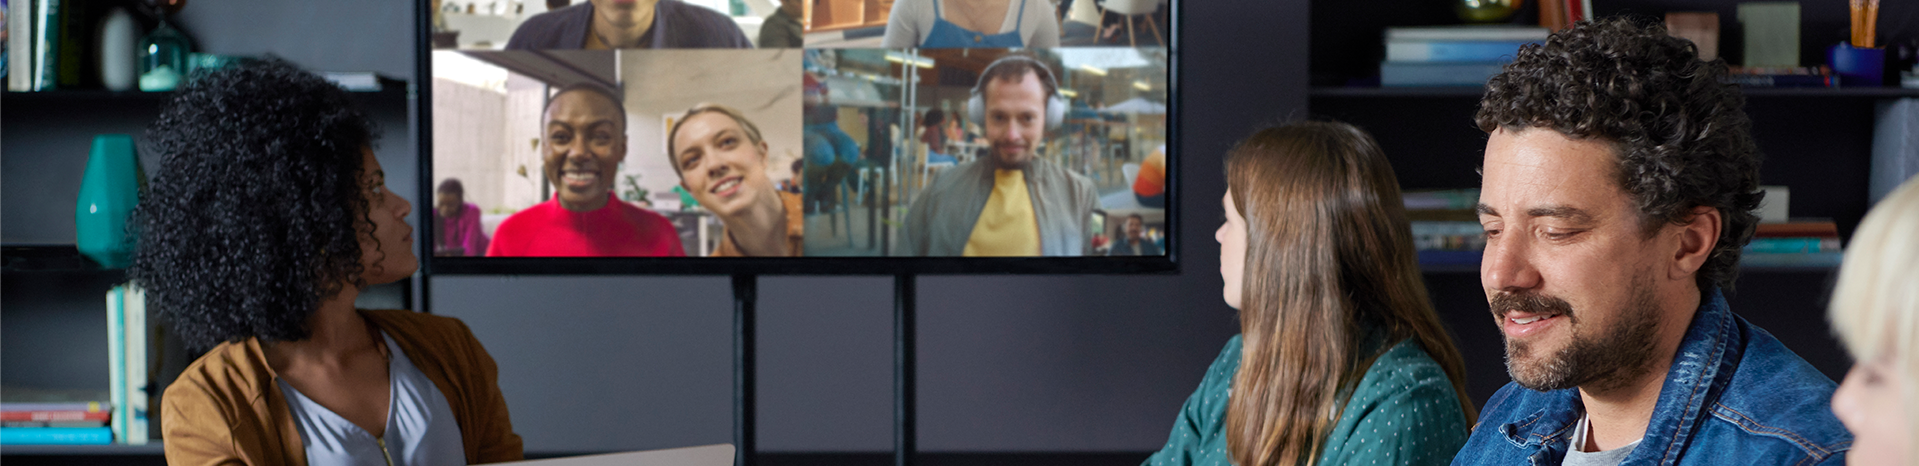 Four people having a meeting with five others joining via video, visible on the large screen at the front of the room